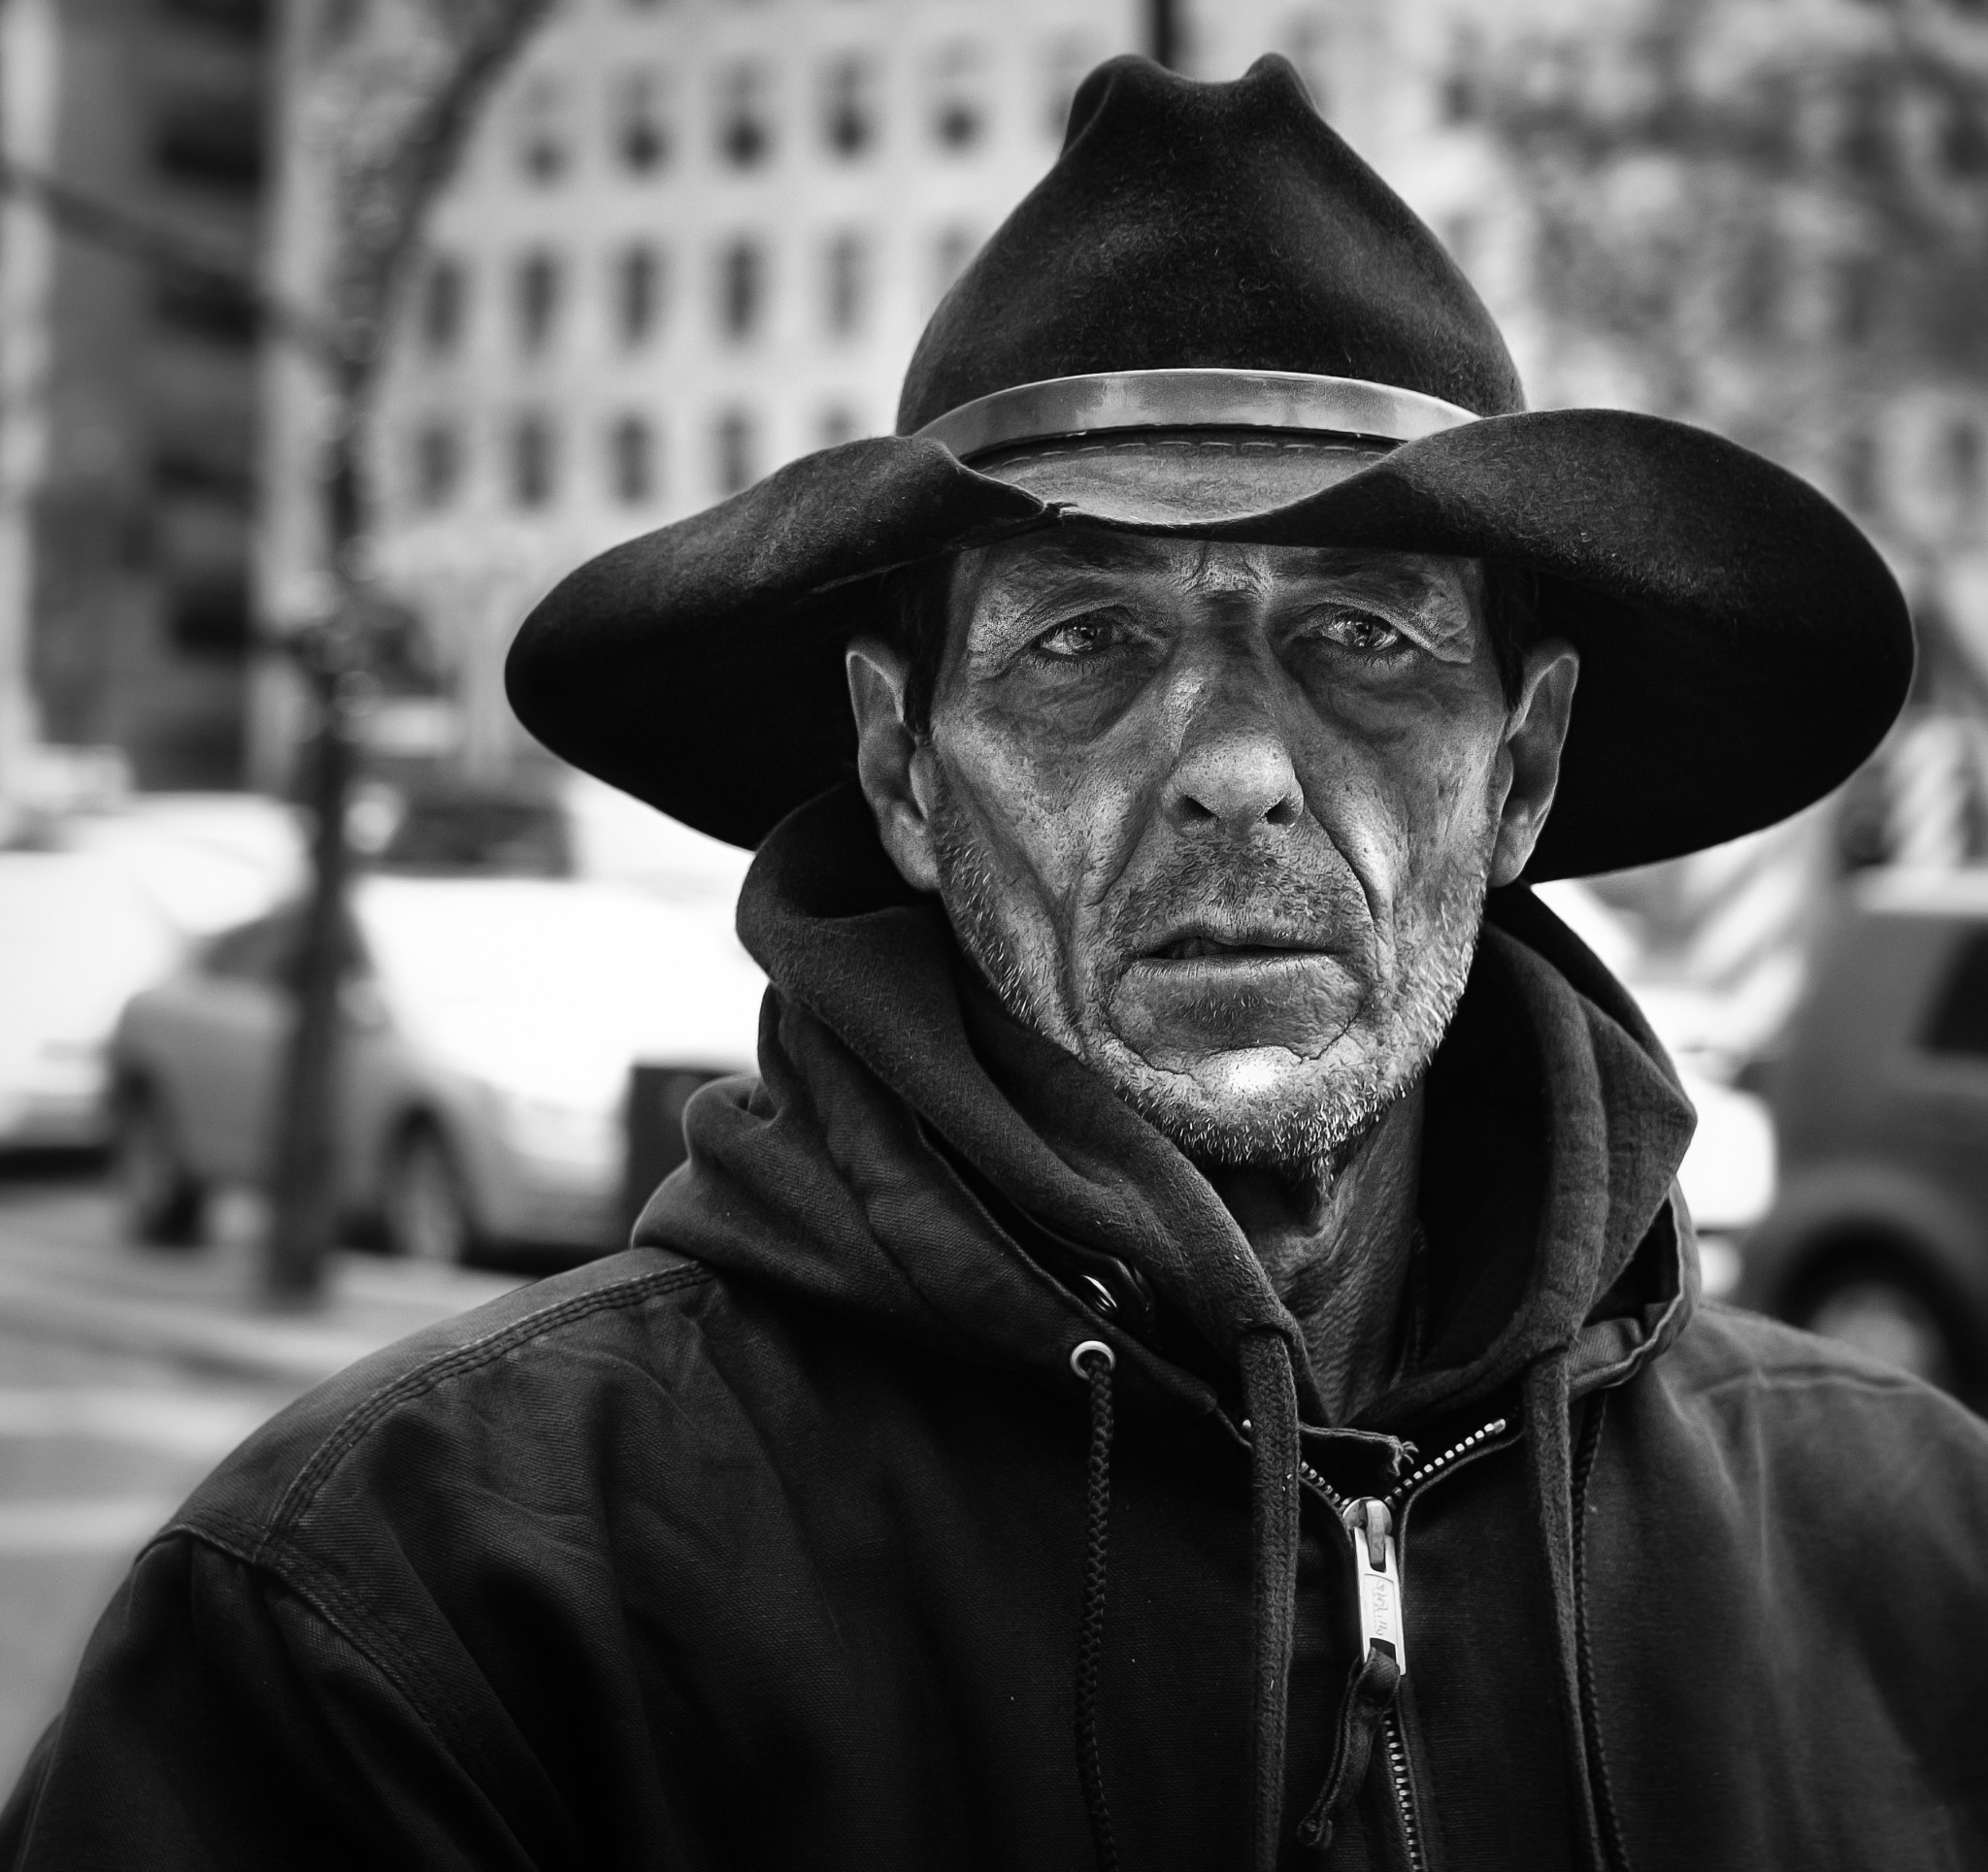 Photograph Urban Cowboy by Kurt Anno on 500px